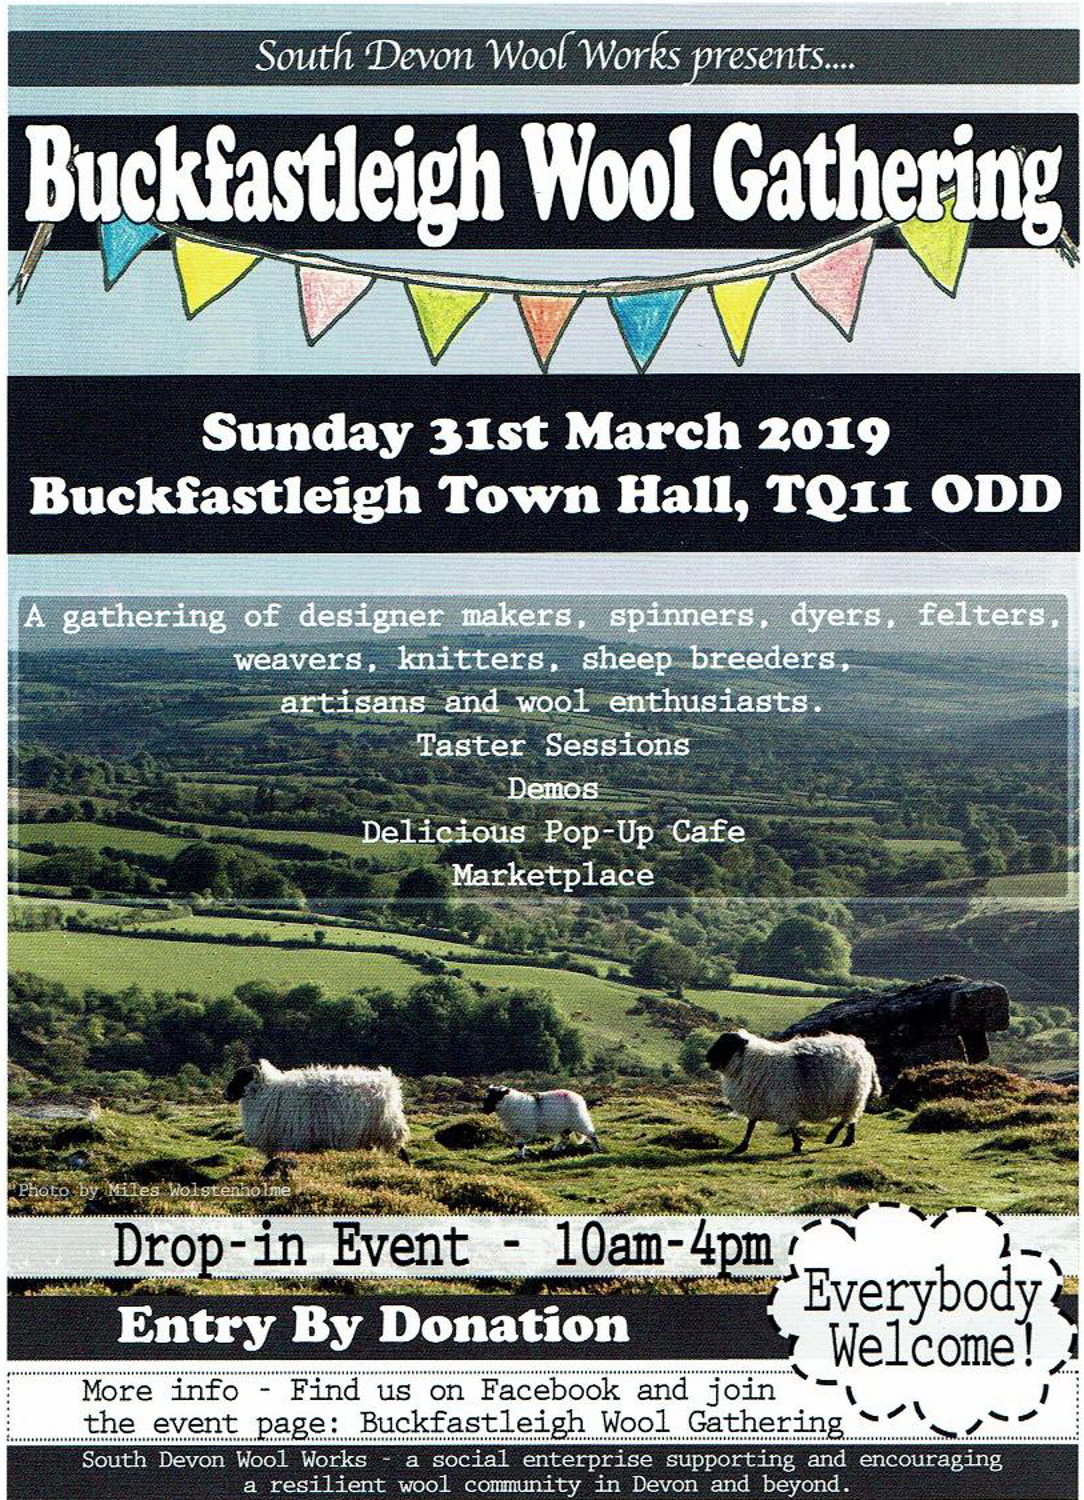 Buckfastleigh Wool Gathering, 31st March 2019